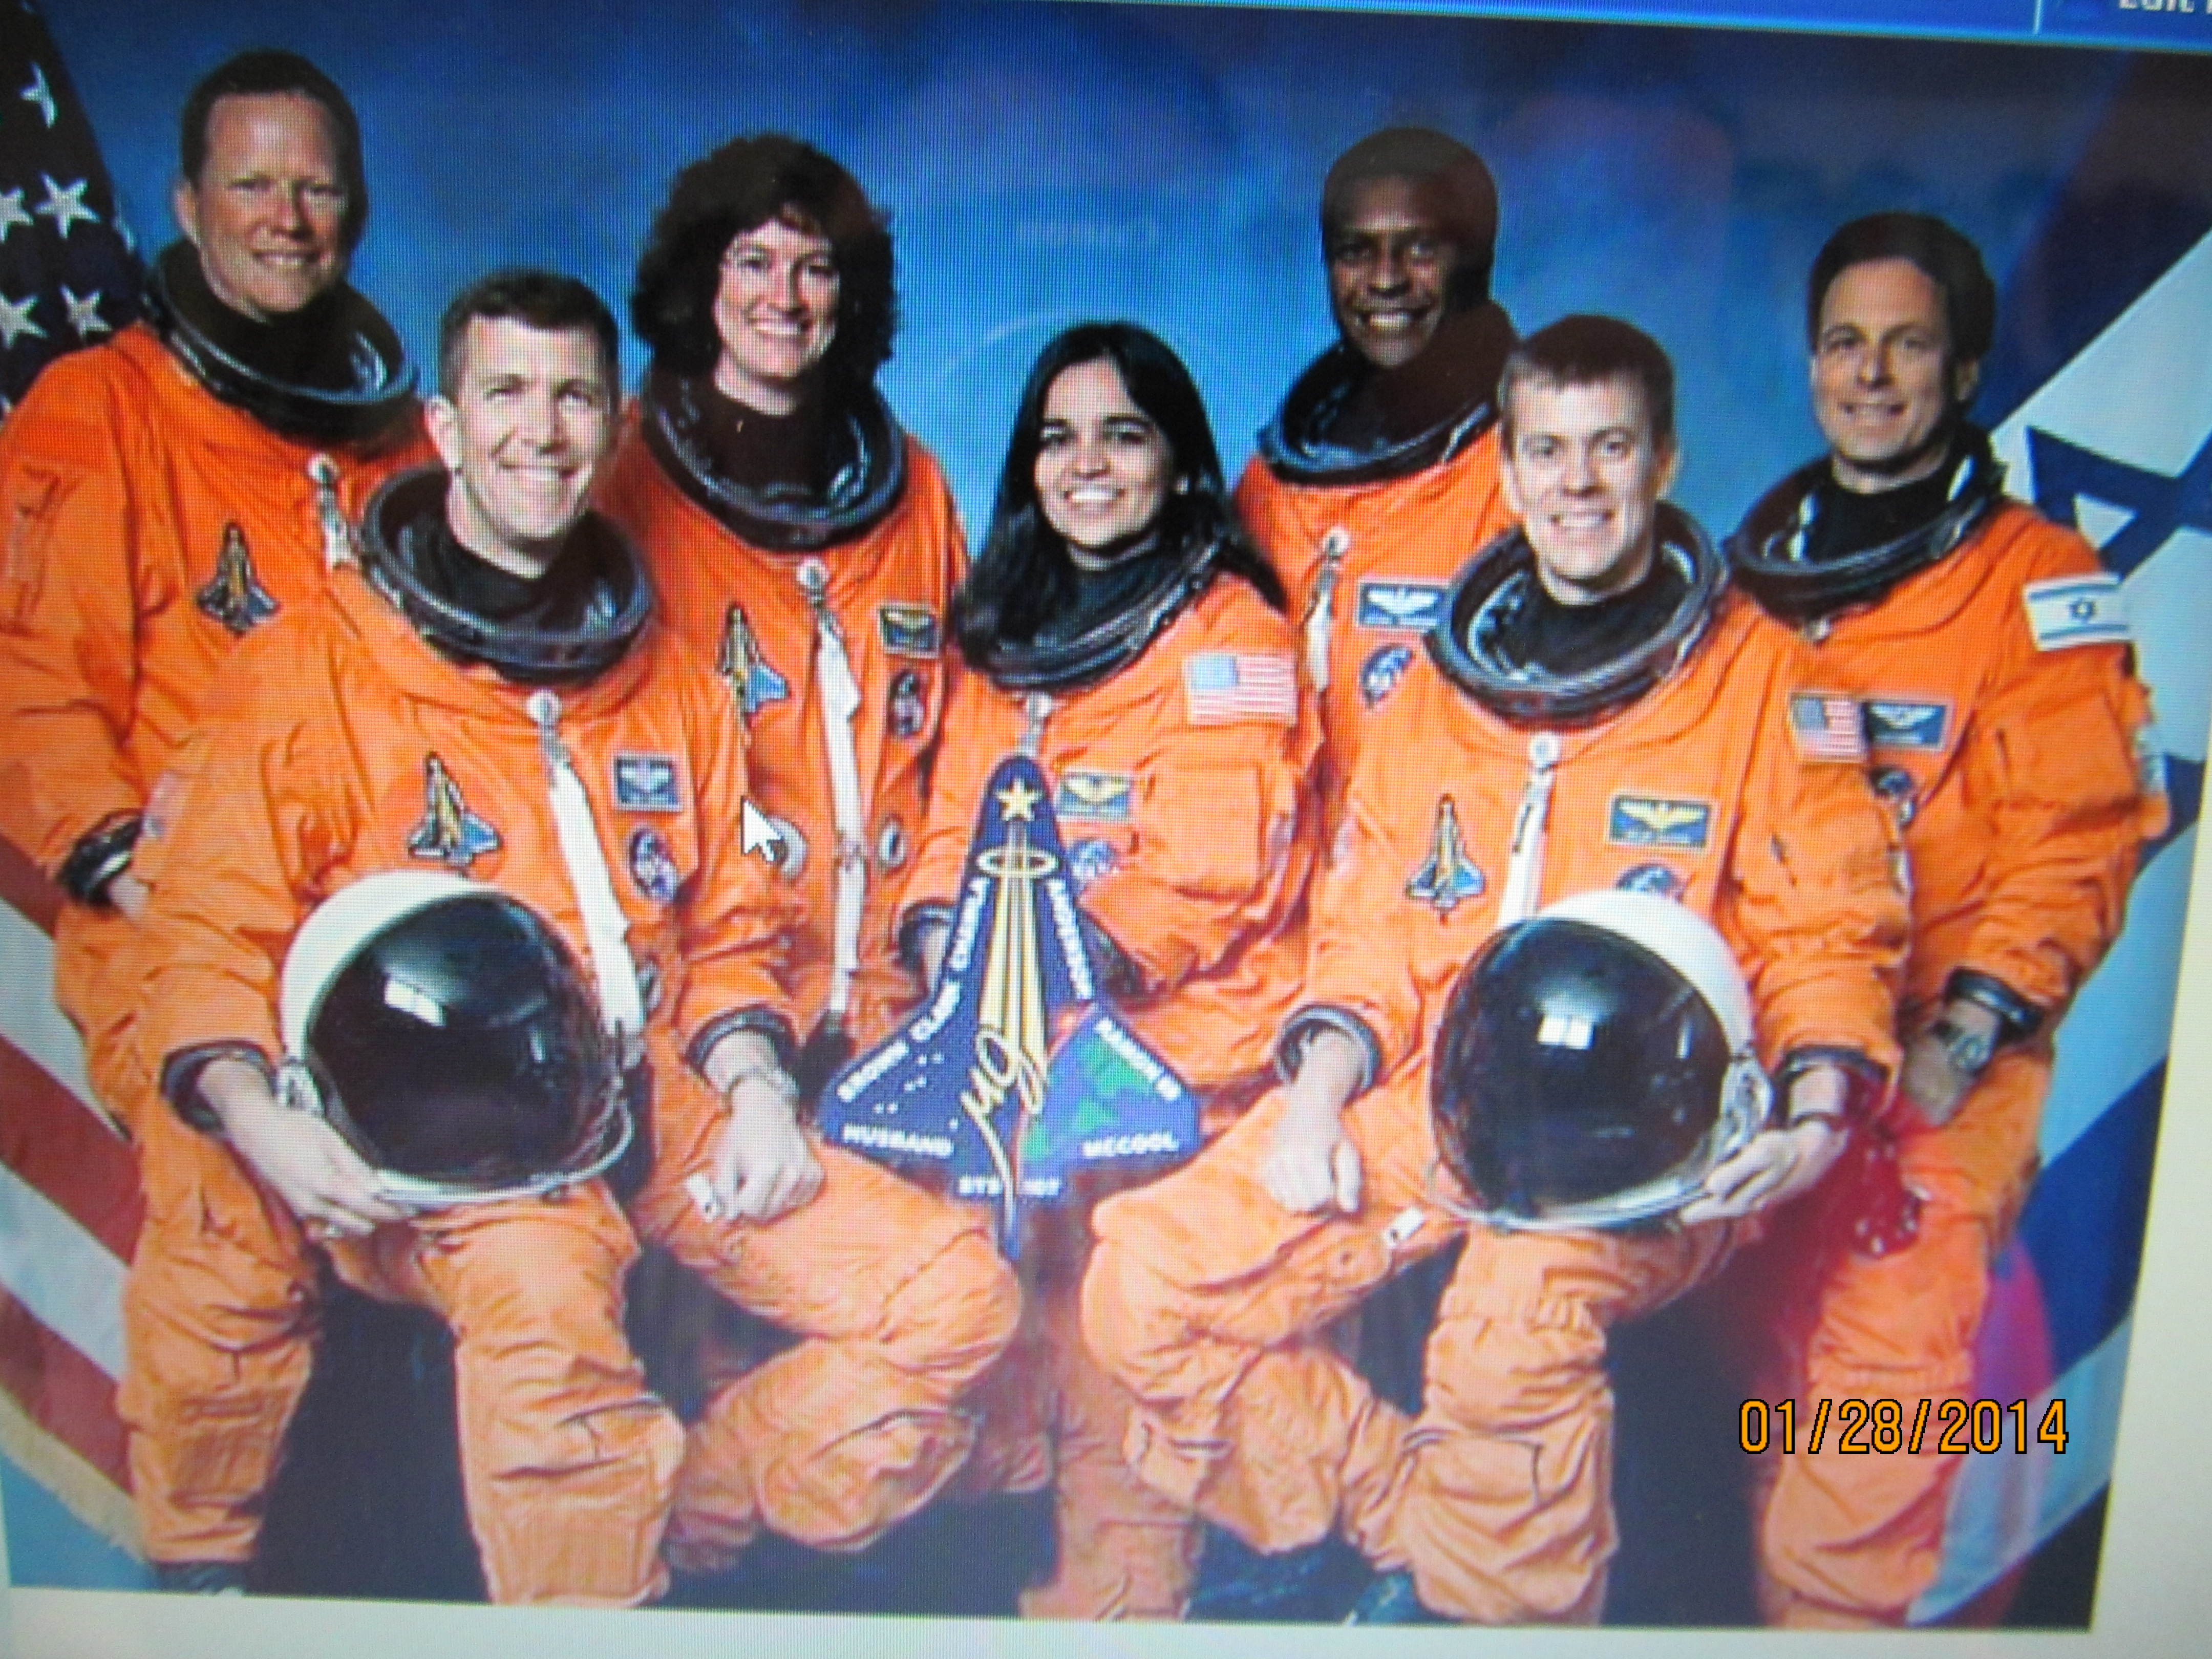 Challenger crew names - Pictures of Space